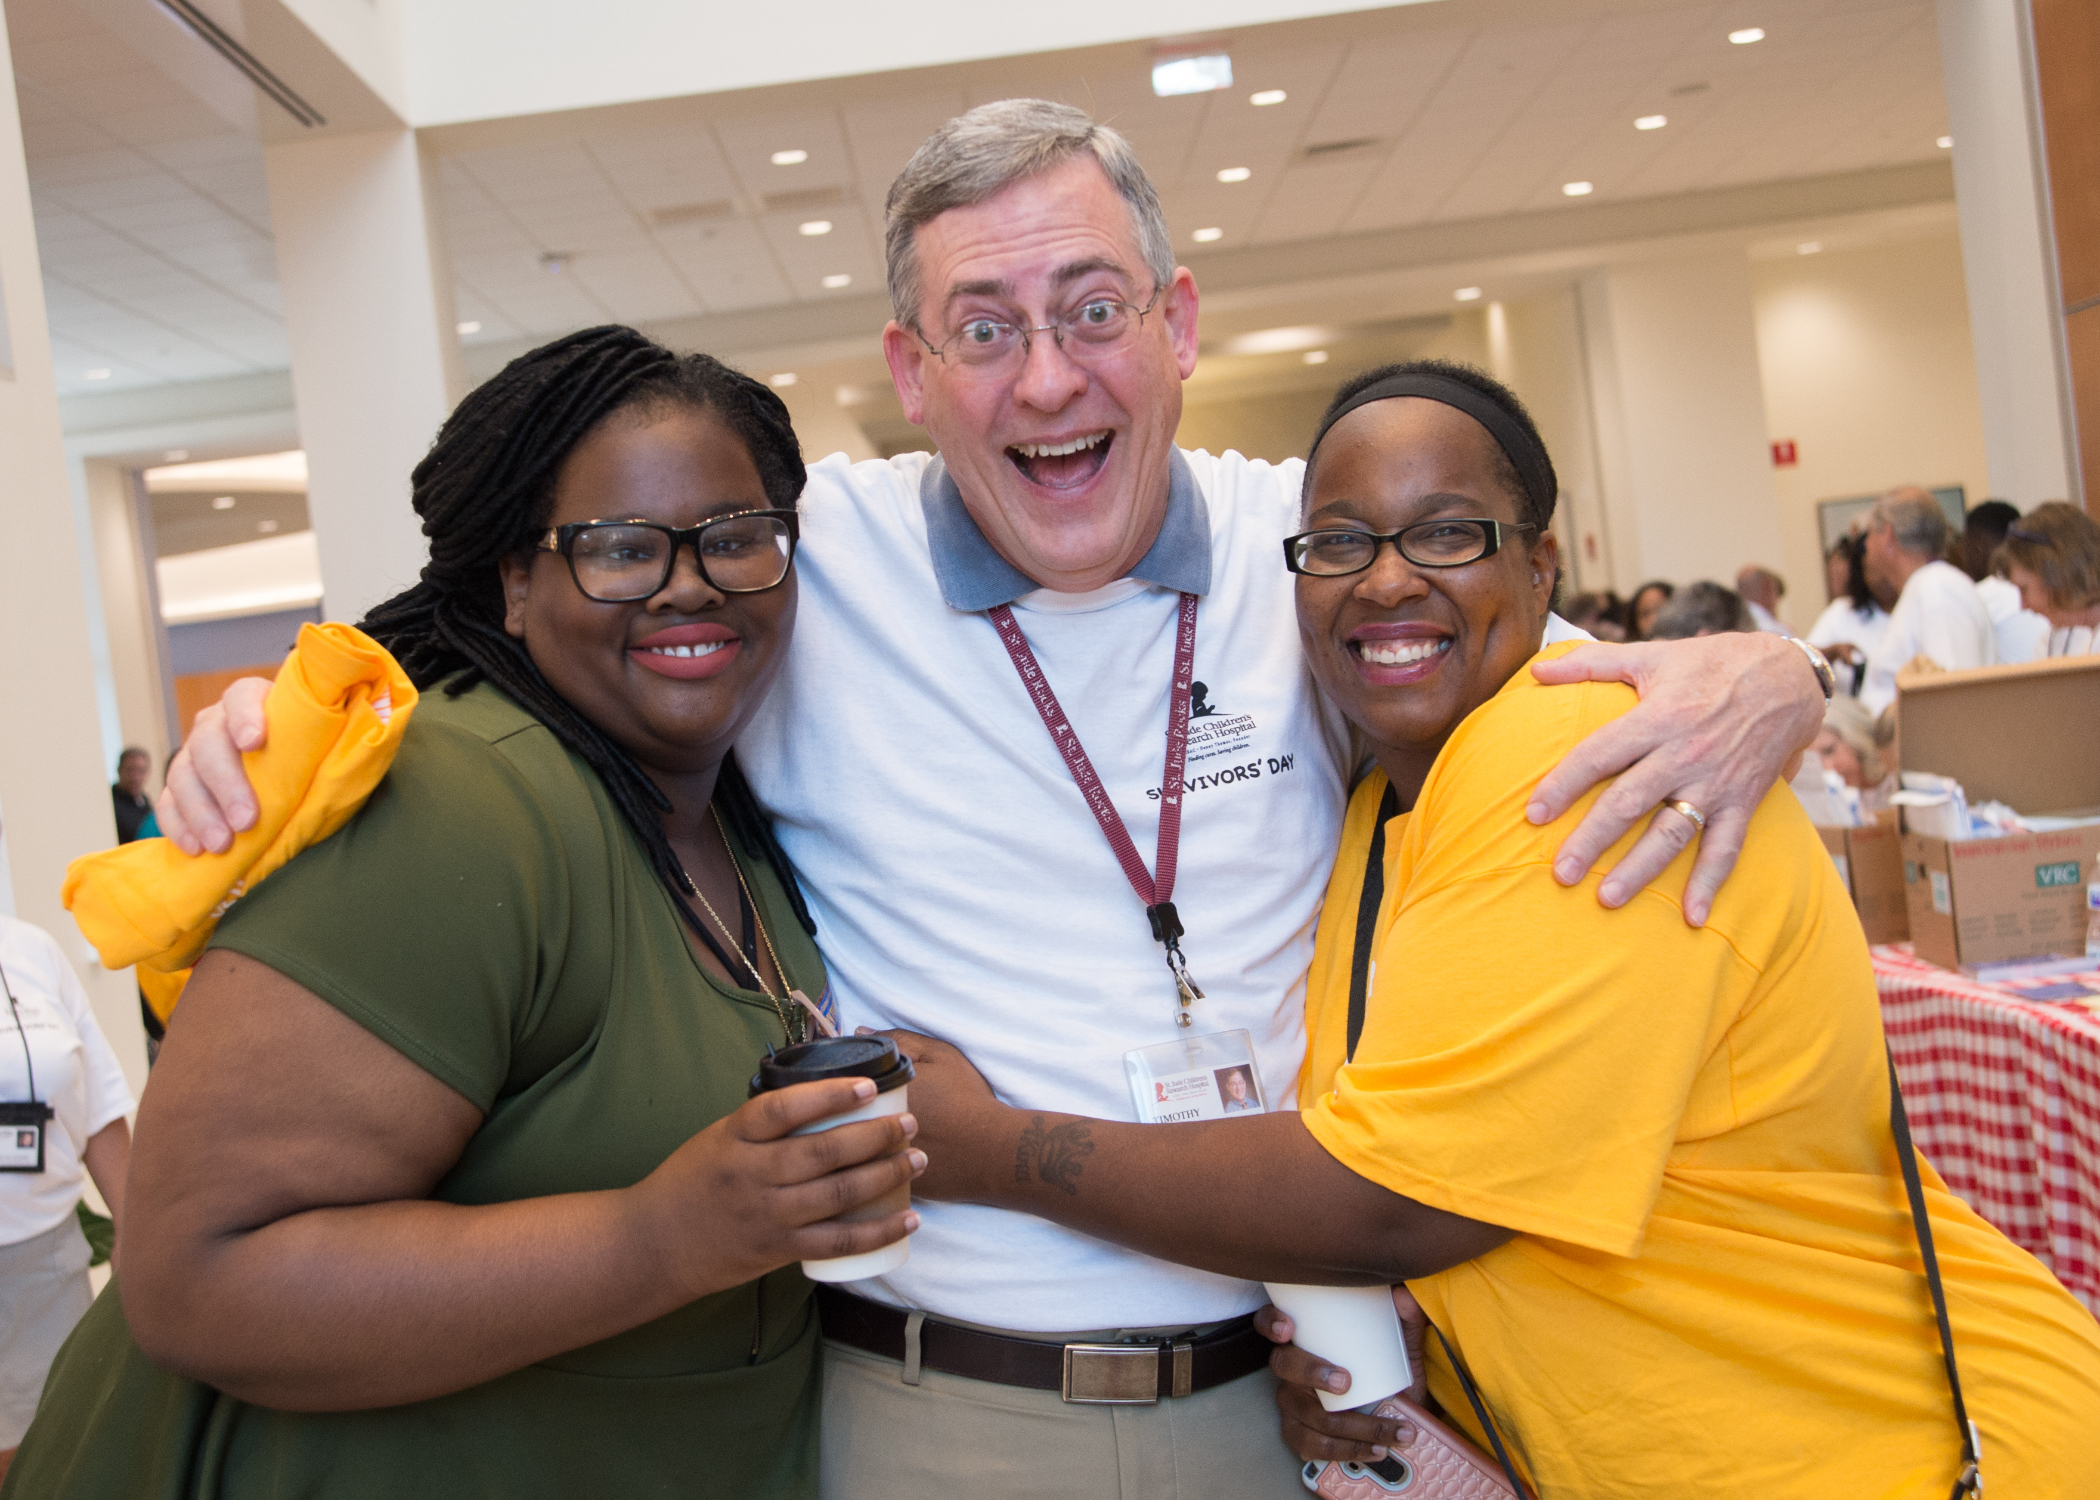 Tim Folse, MD, and volunteers during Survivors Day